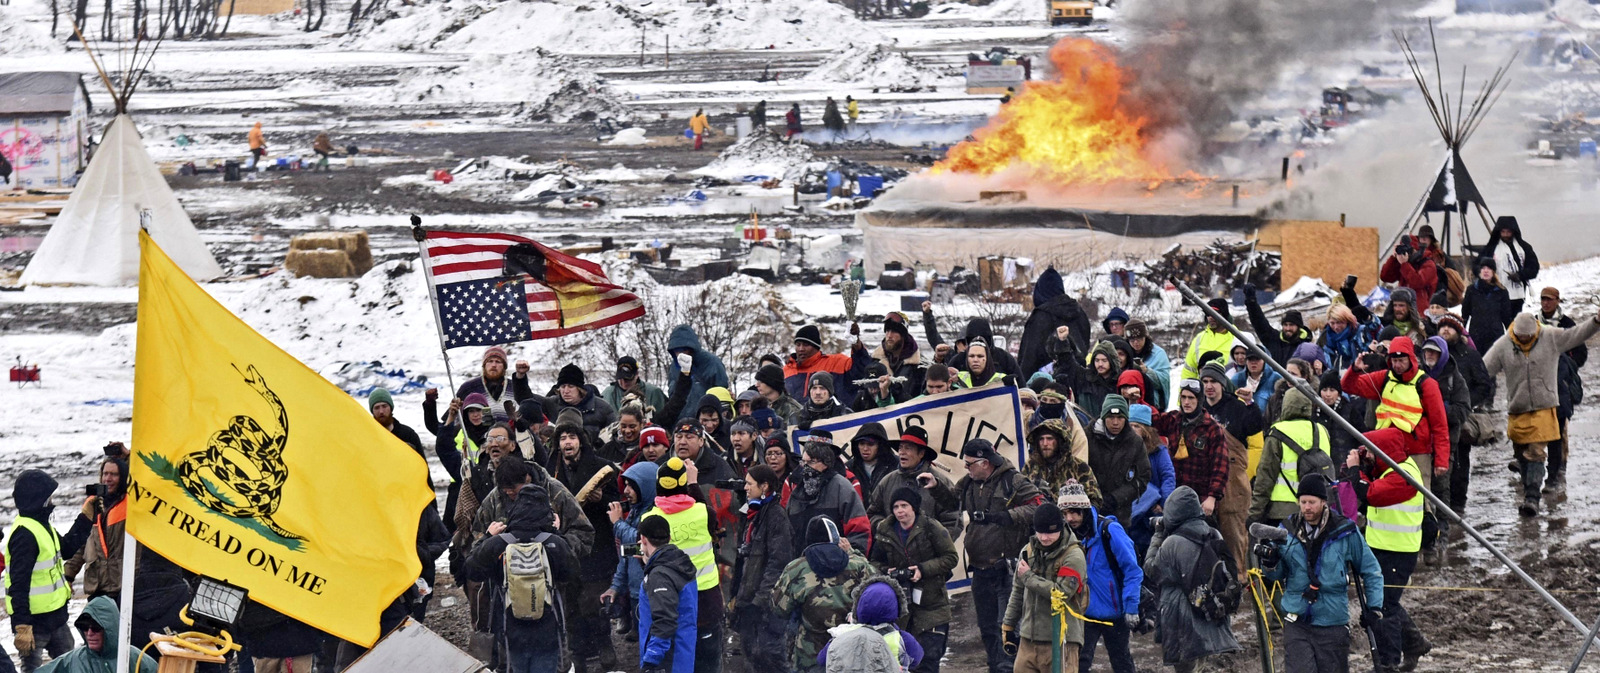 Journalist Charged With Stalking For Filming Dakota Access Pipeline